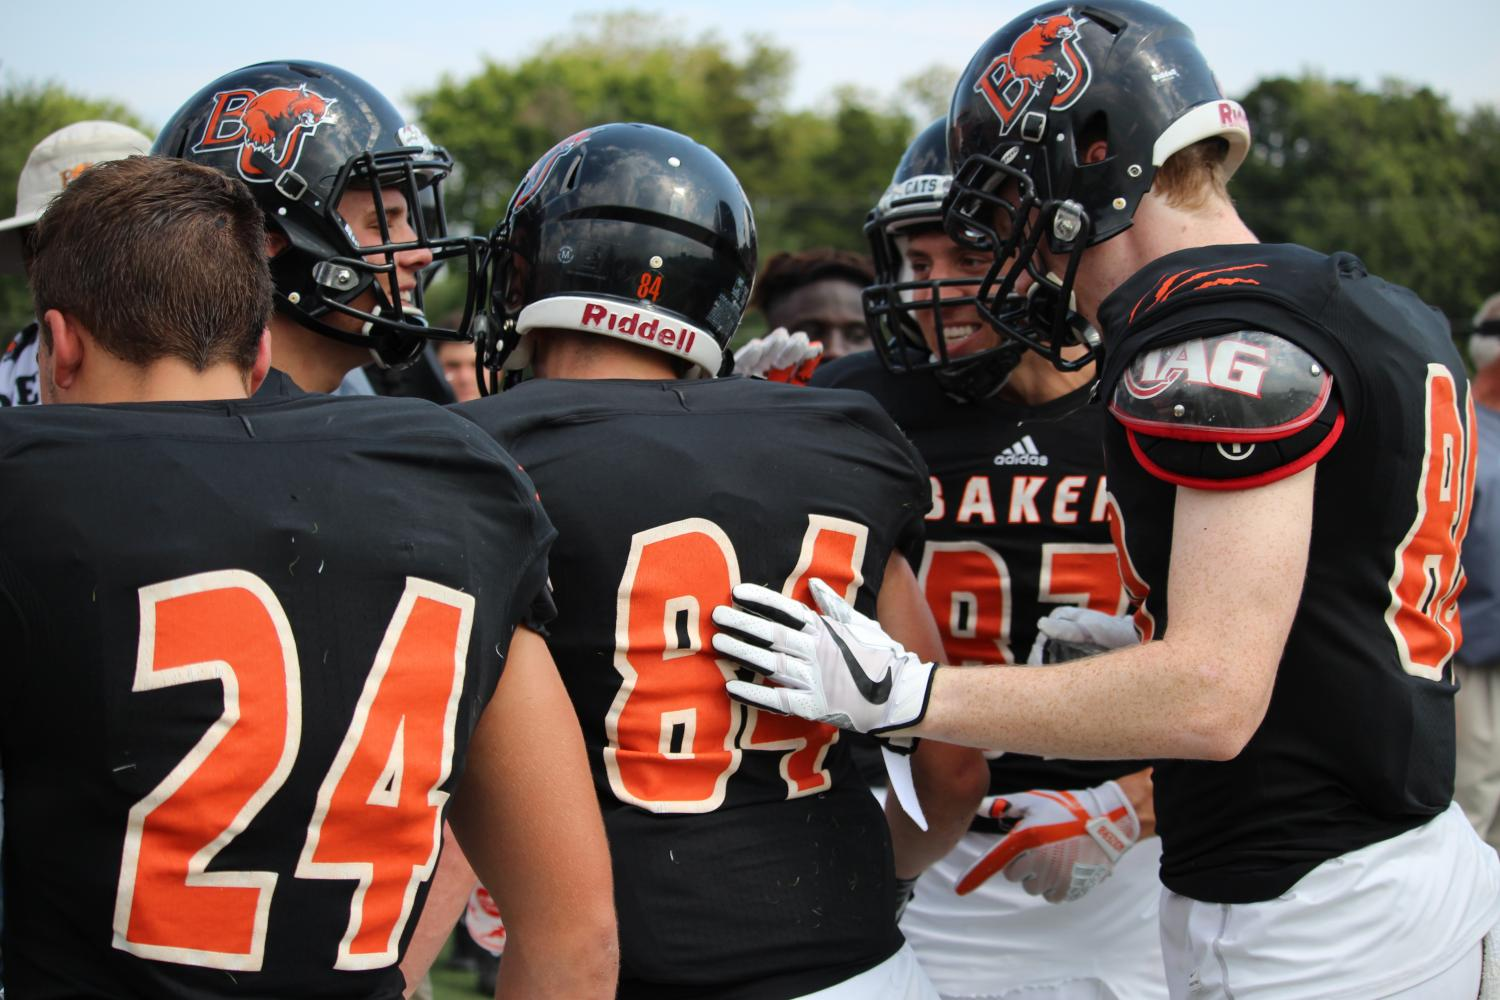 Teammates congratulate freshman Nick Snider after a play during Baker's homecoming game against Graceland University.